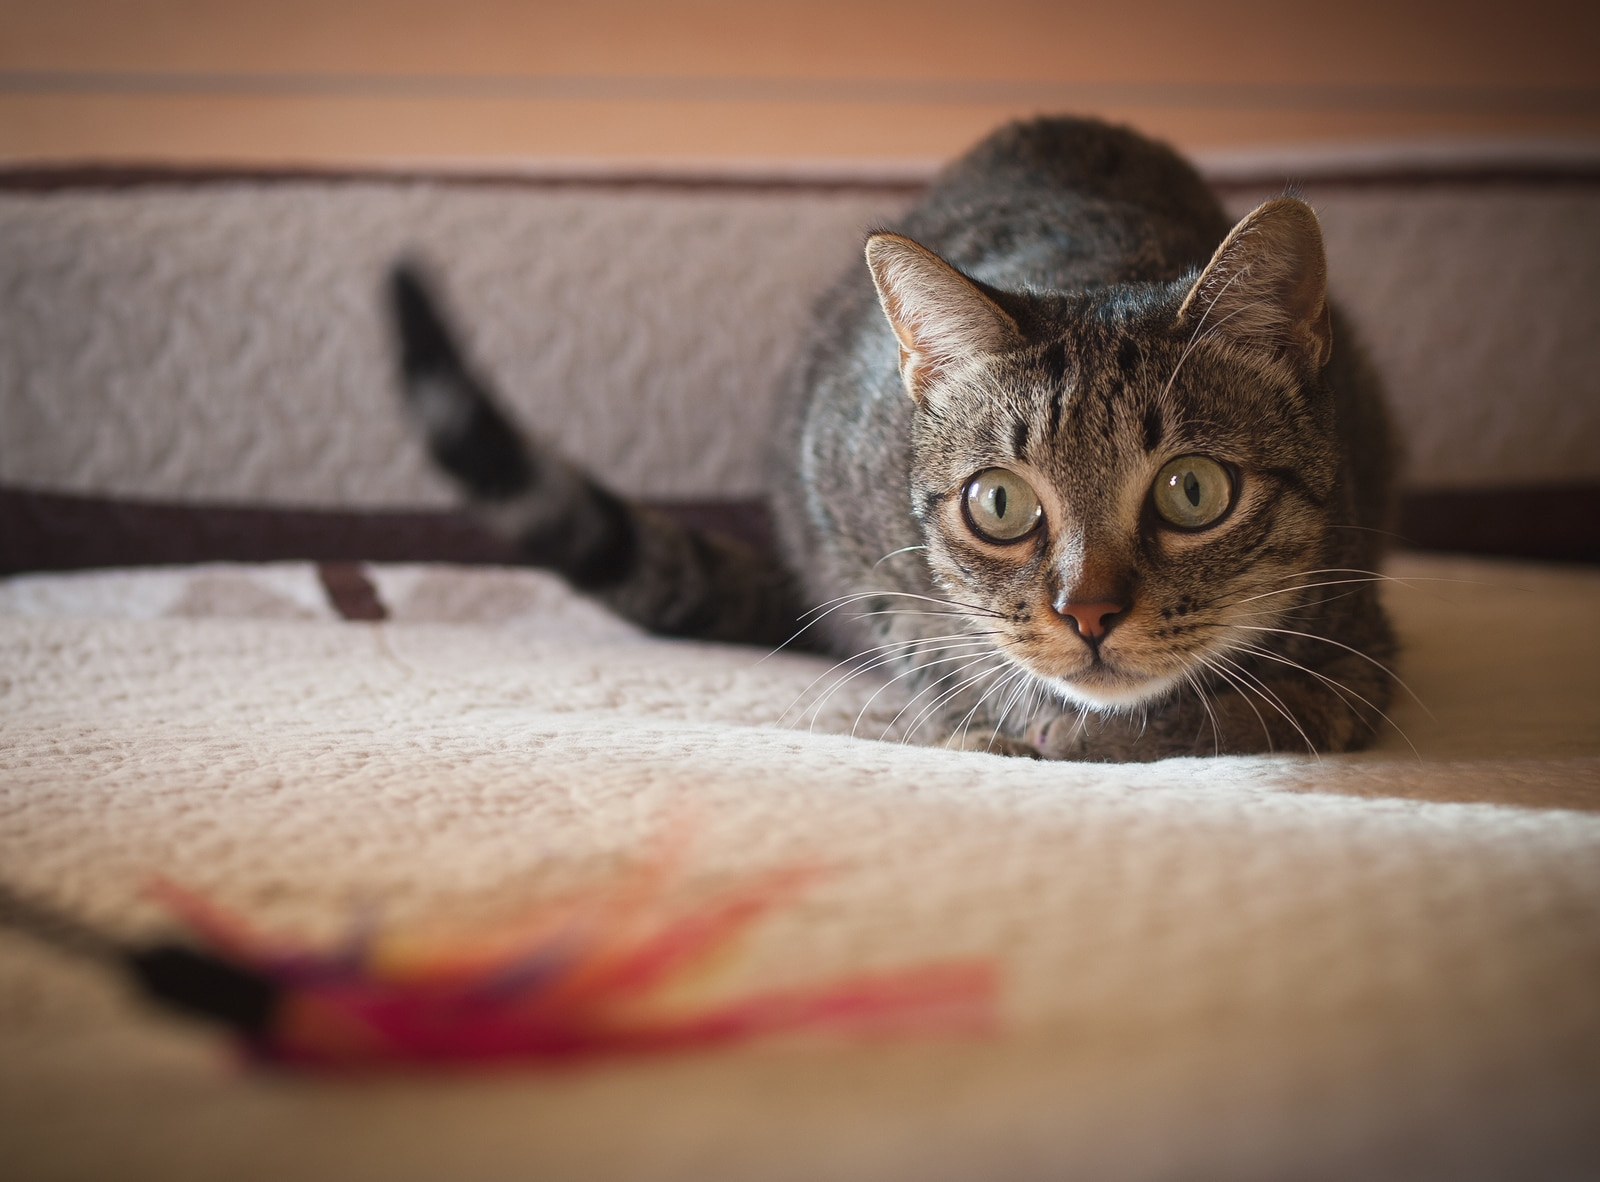 Tabby cat in crouched position about to prance on feather toy.